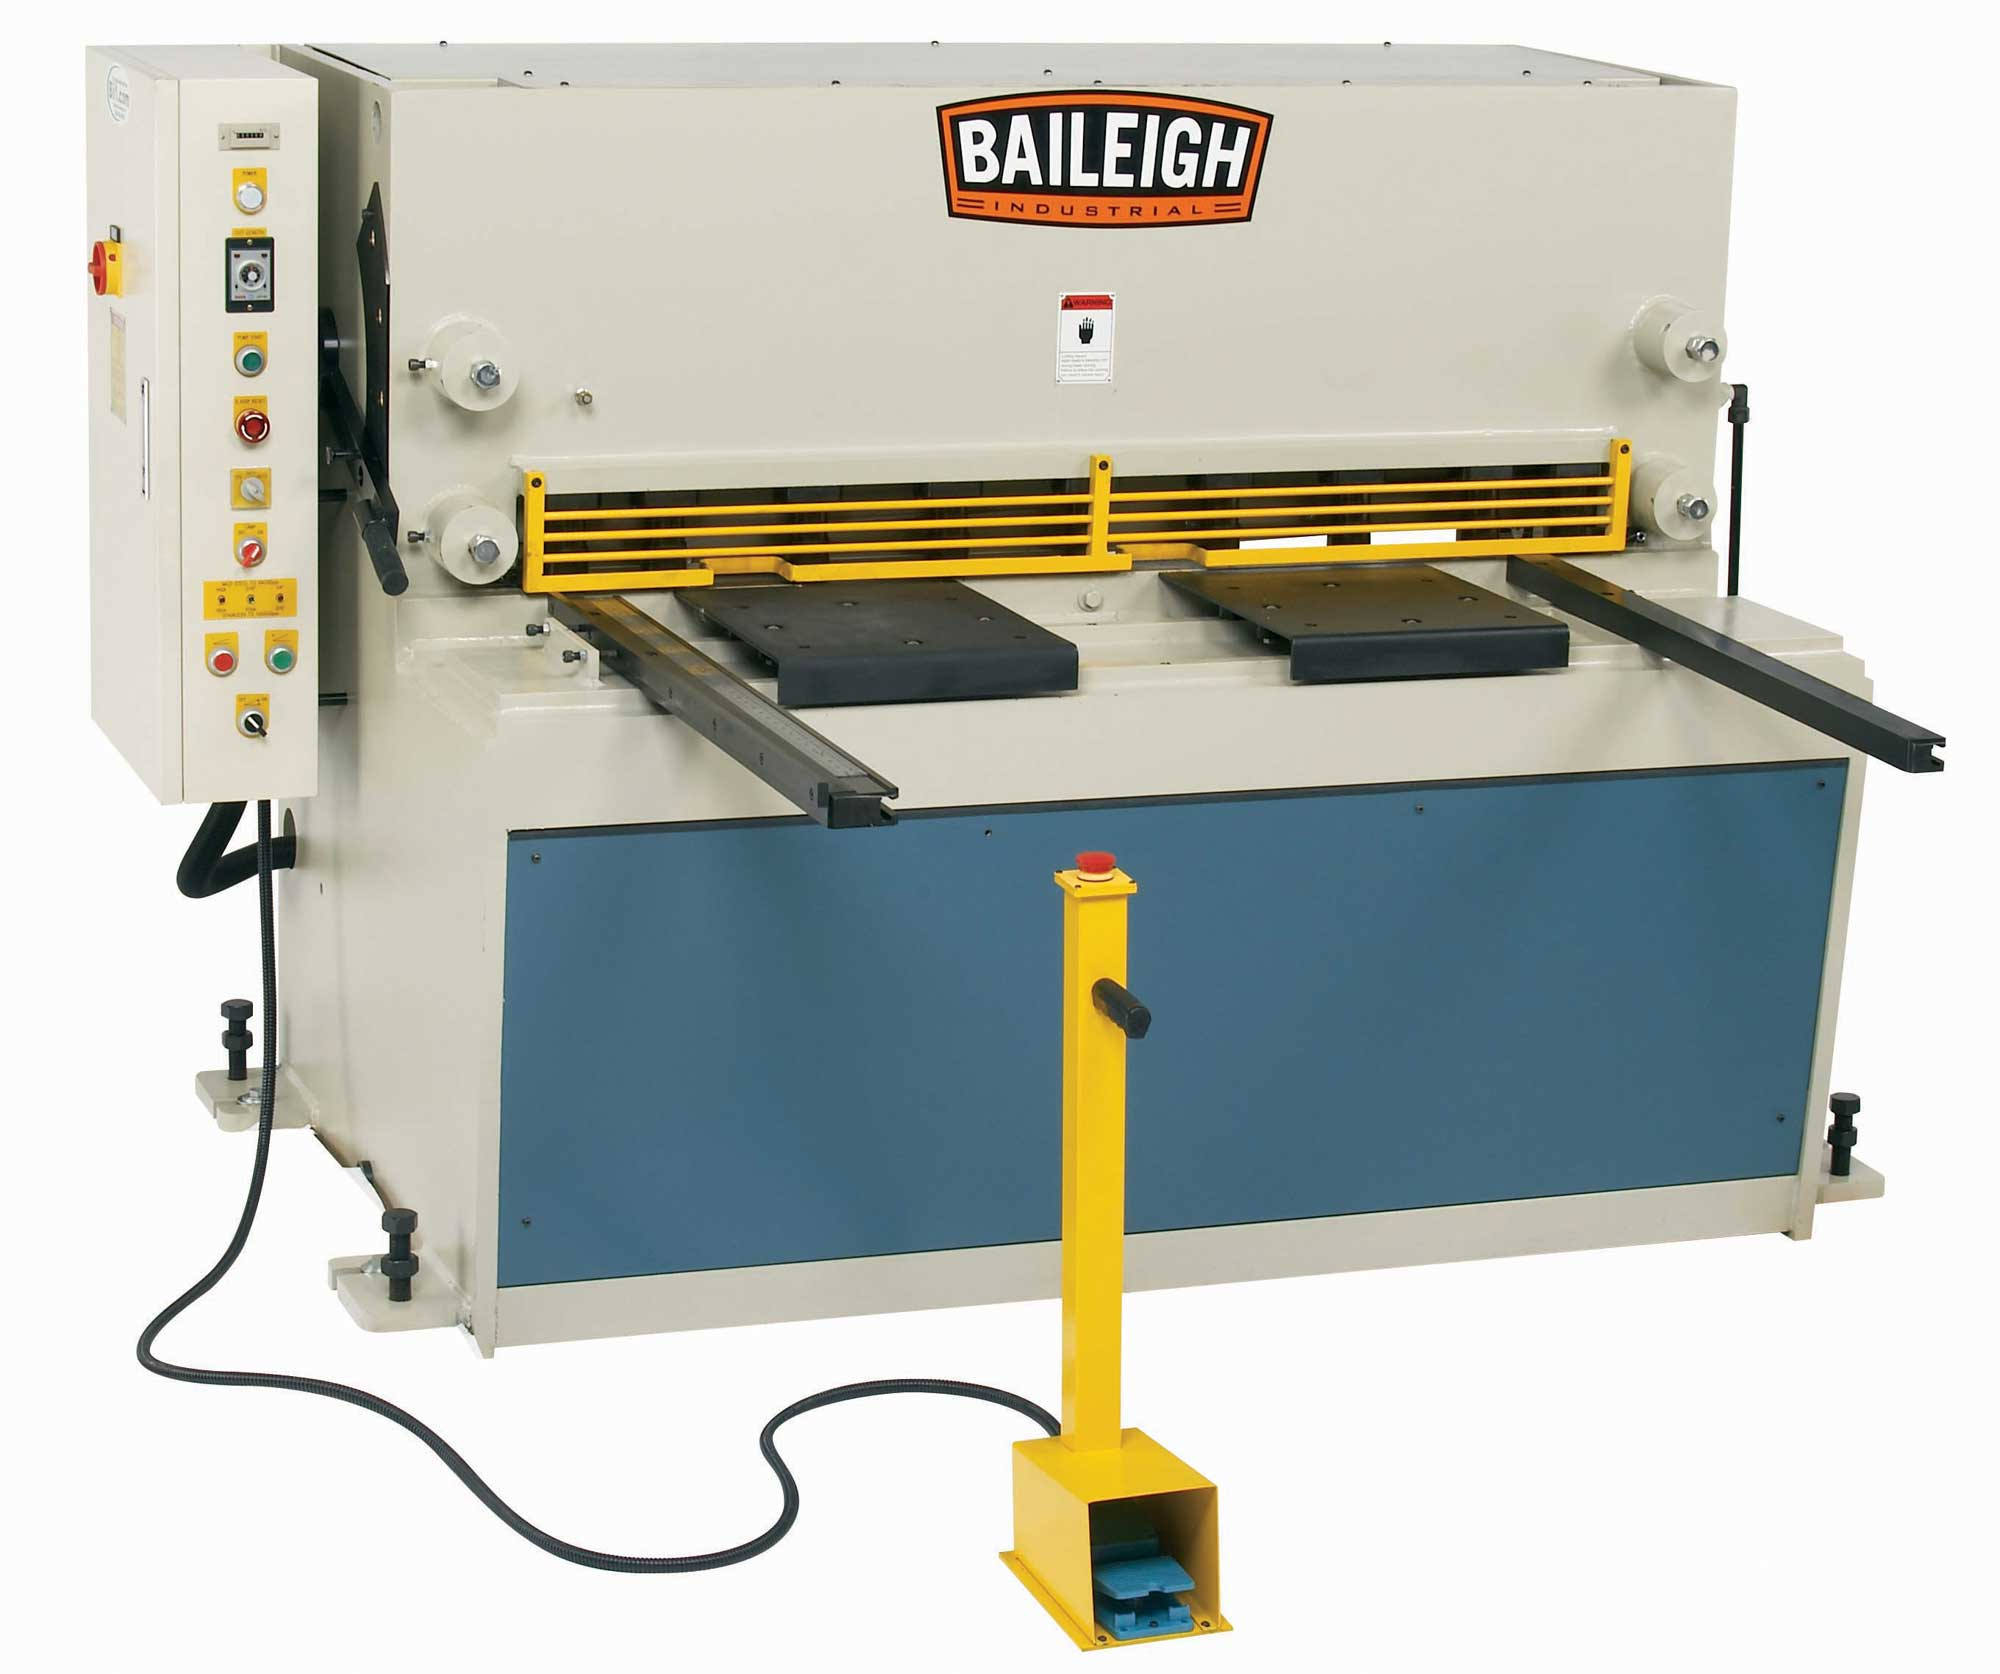 Baileigh Sh 5203hd Hydraulic Plate Shear